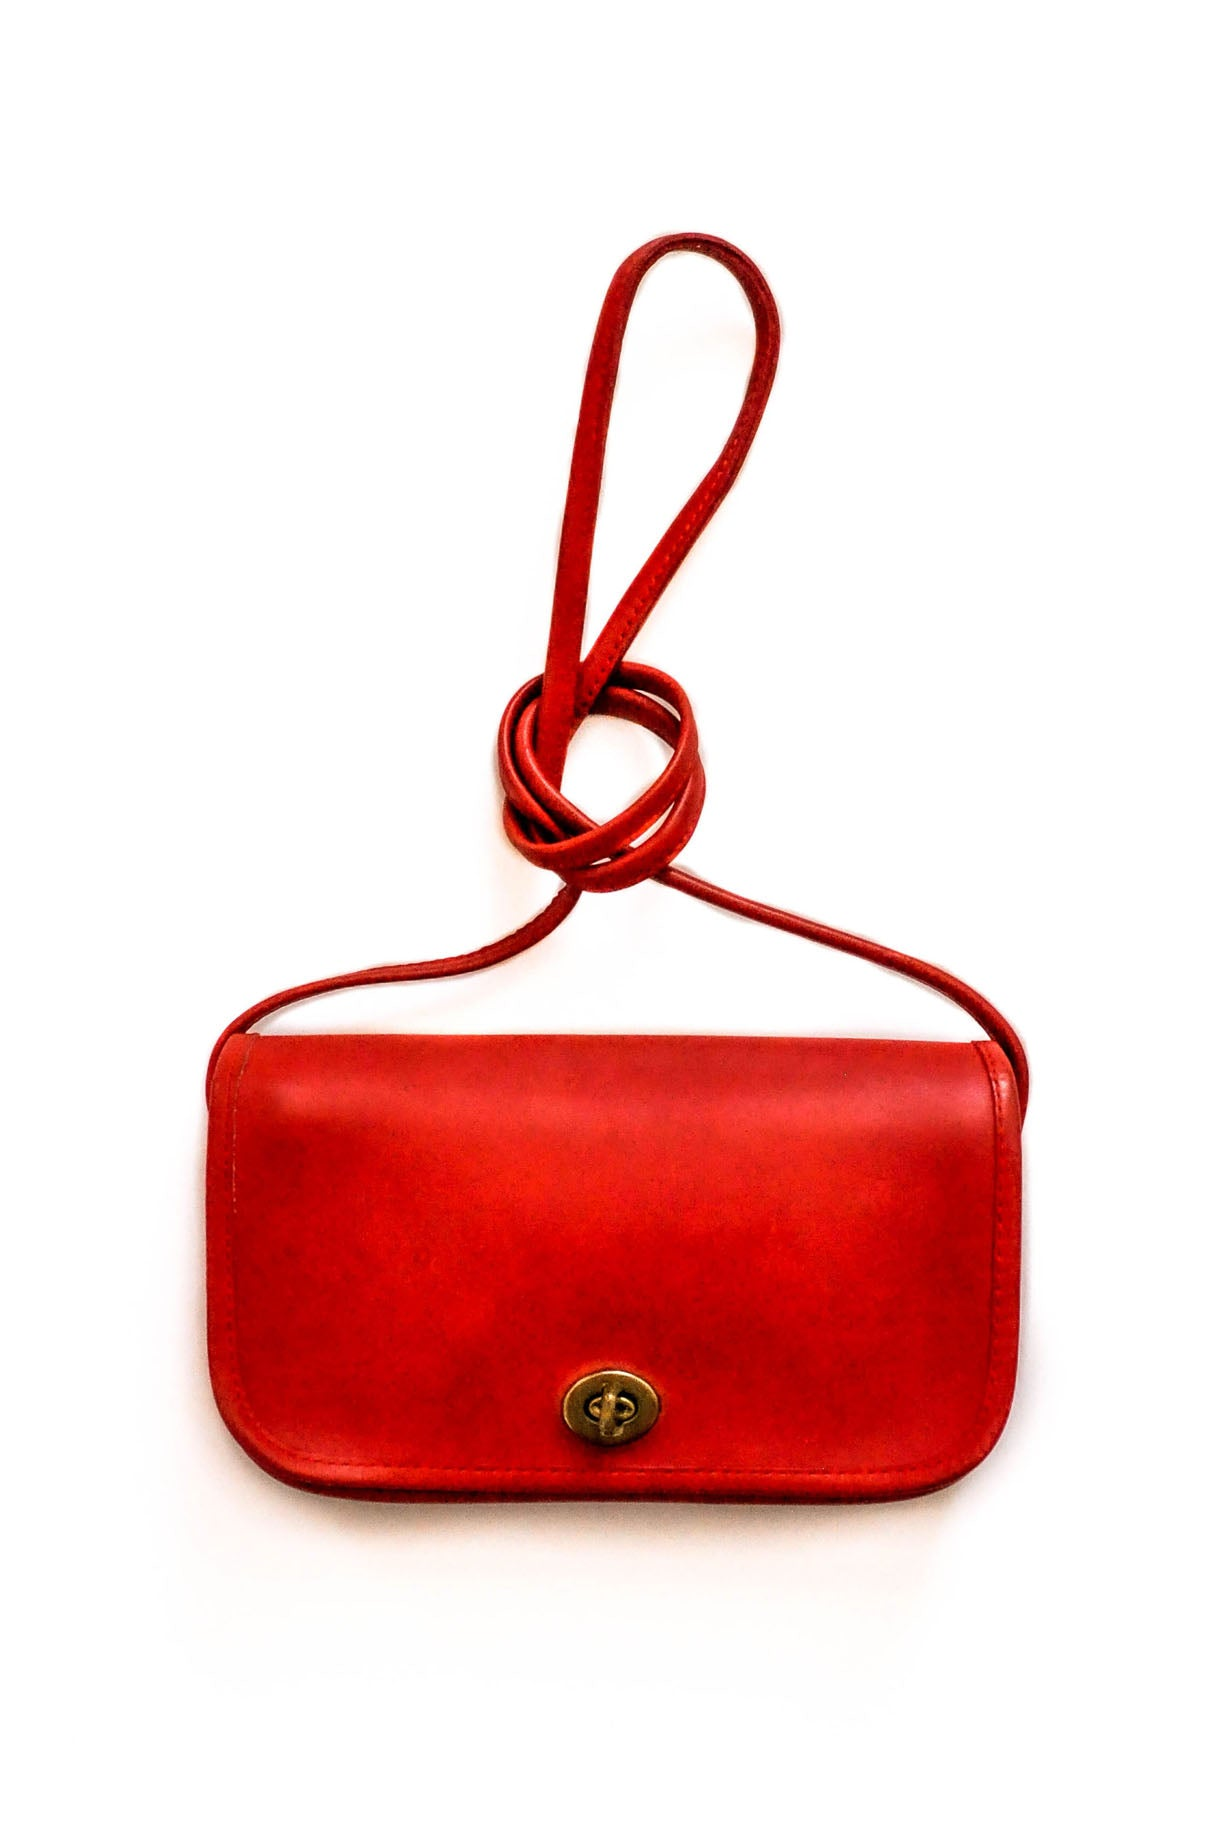 Vintage Red leather crossbody bag from Sweet & Spark.